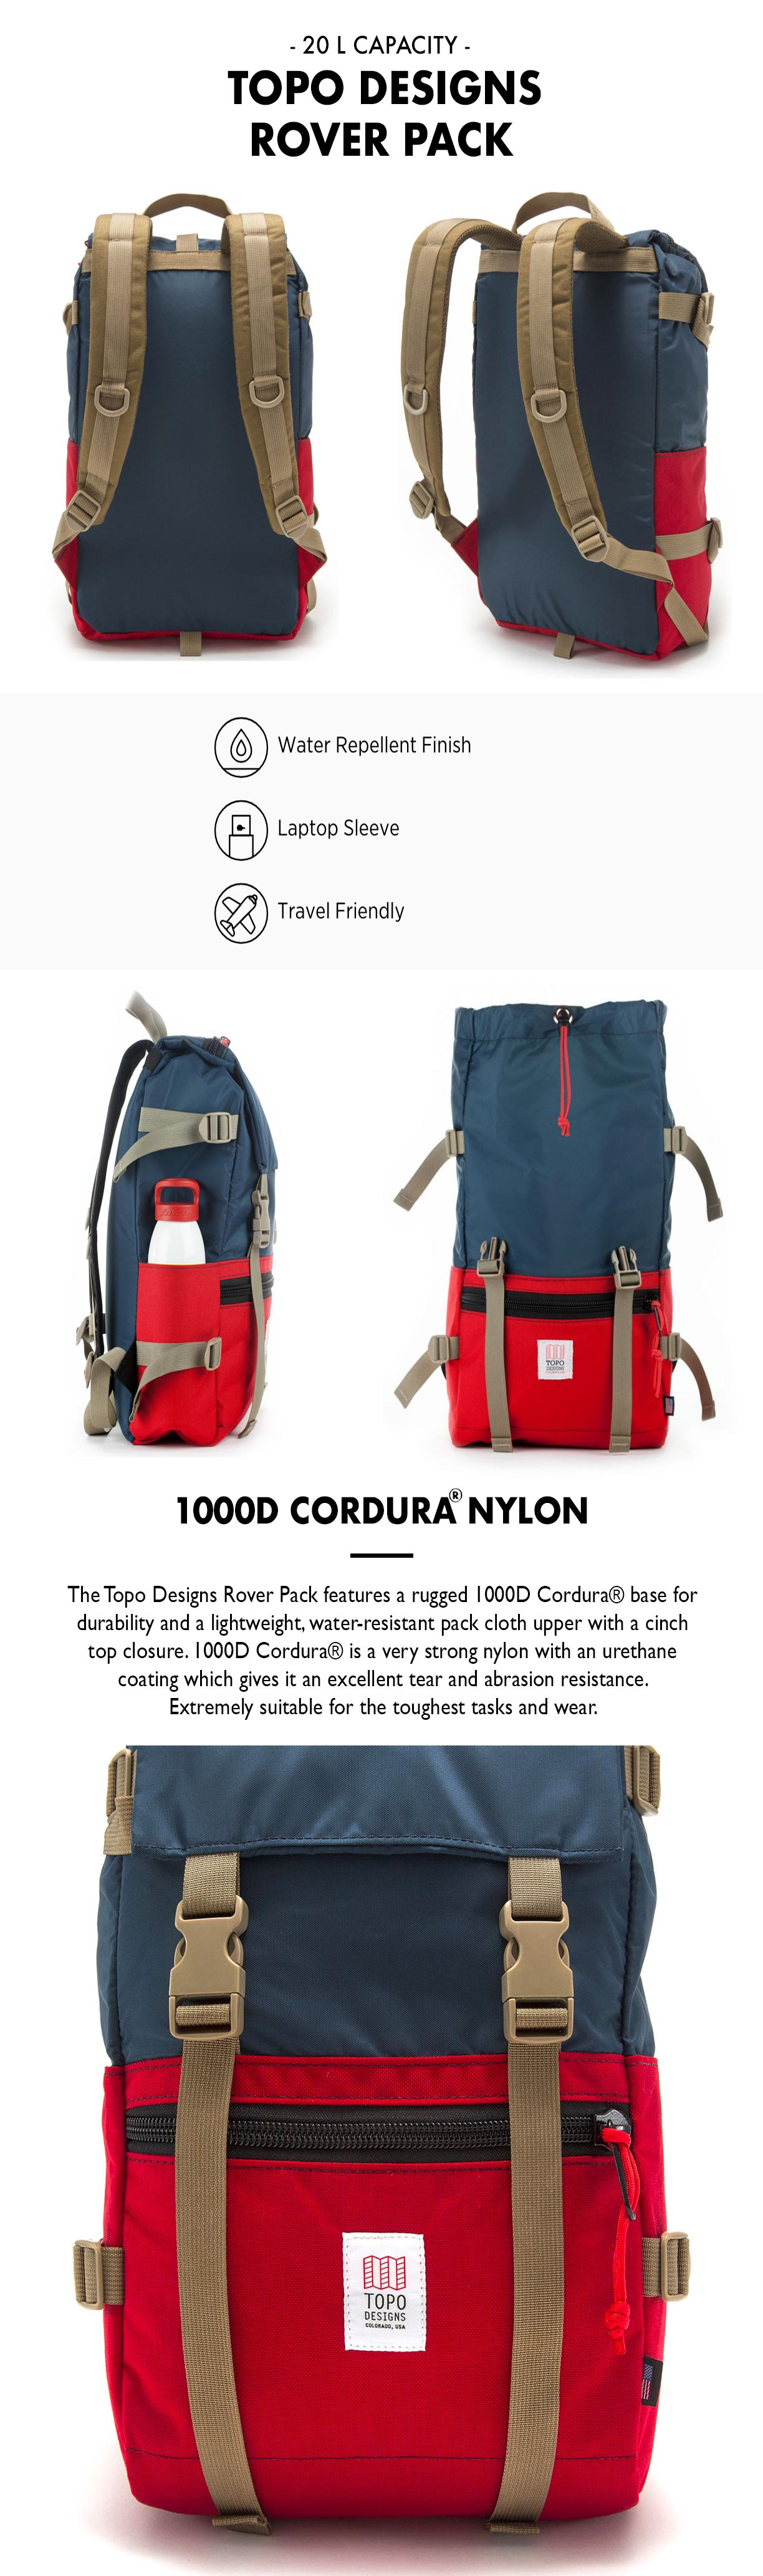 Topo Designs Rover Pack Productinformation